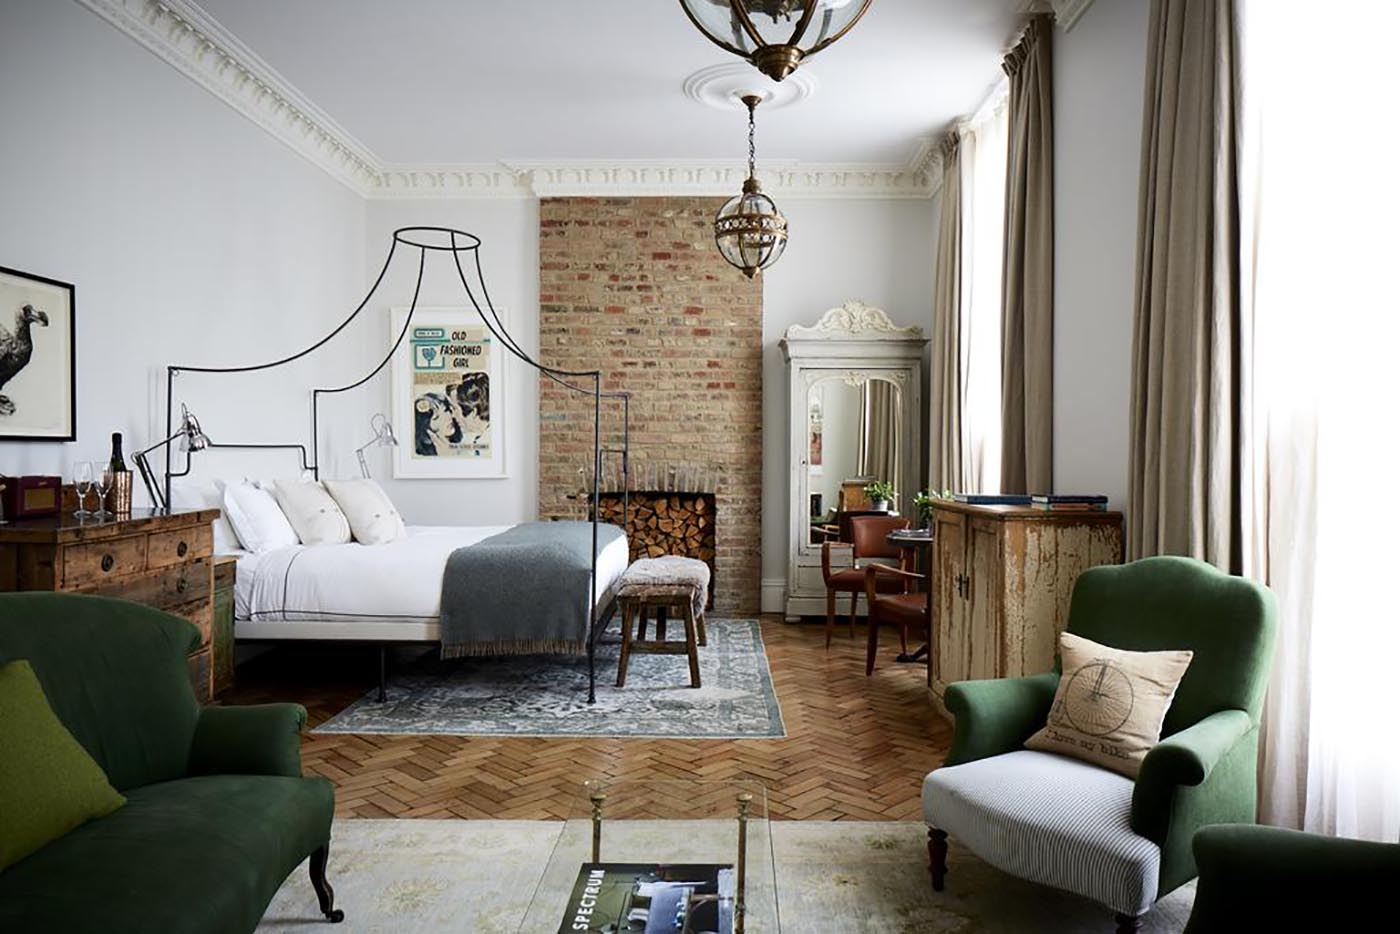 Best hotels in london 2018 edition the discoveries of for Small boutique hotels